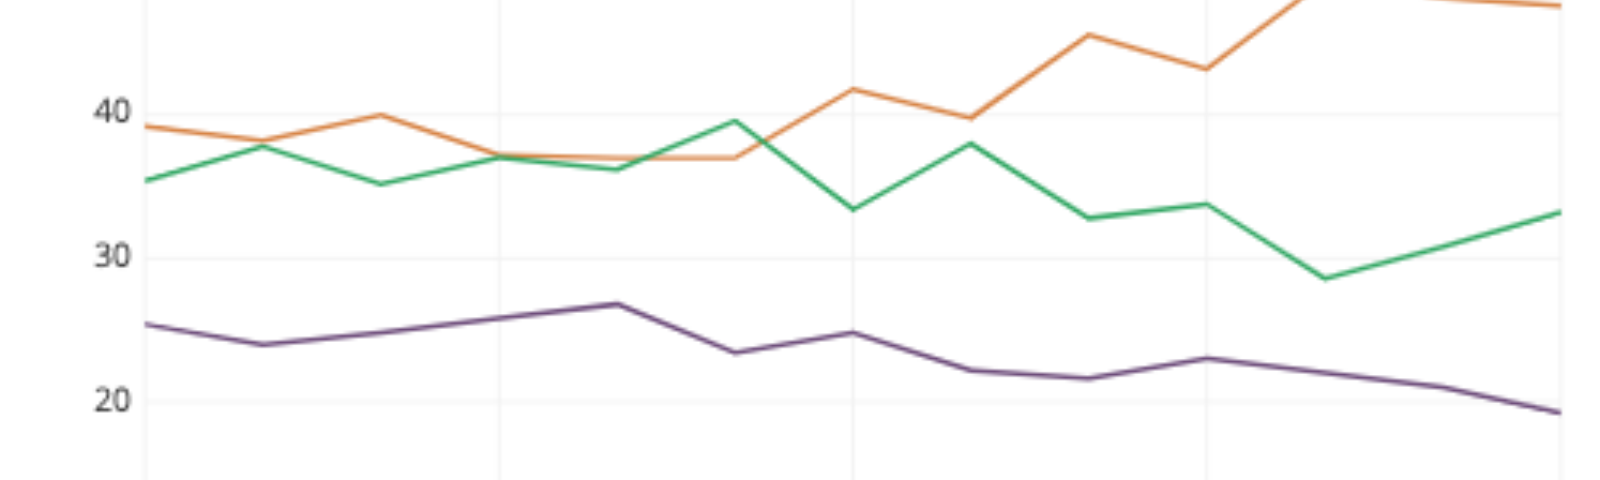 Qualitative colors are used to identify election candidates in this line chart of support over time.